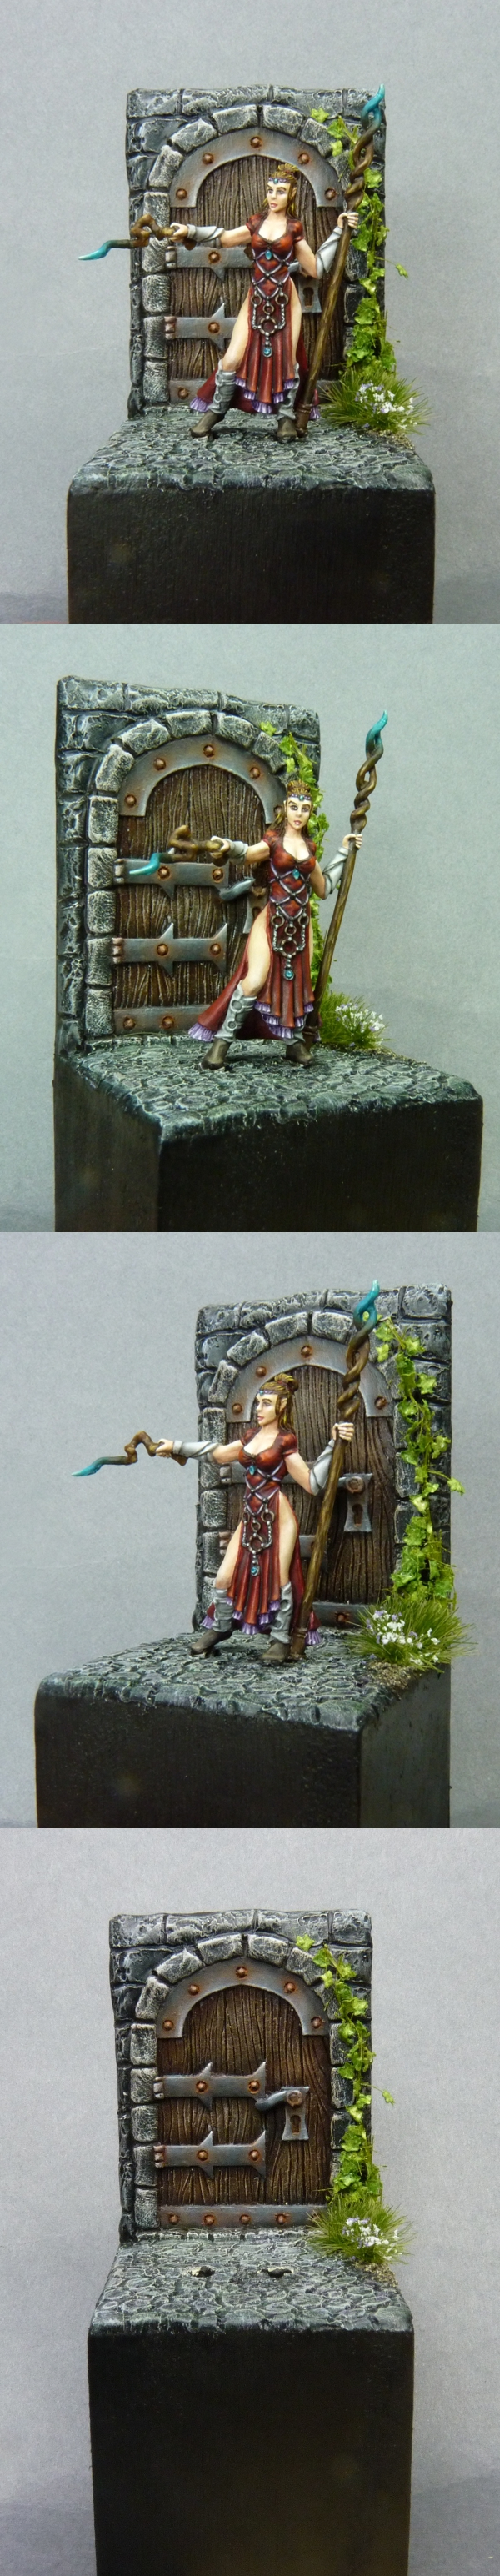 Eilwyn, Enchantress